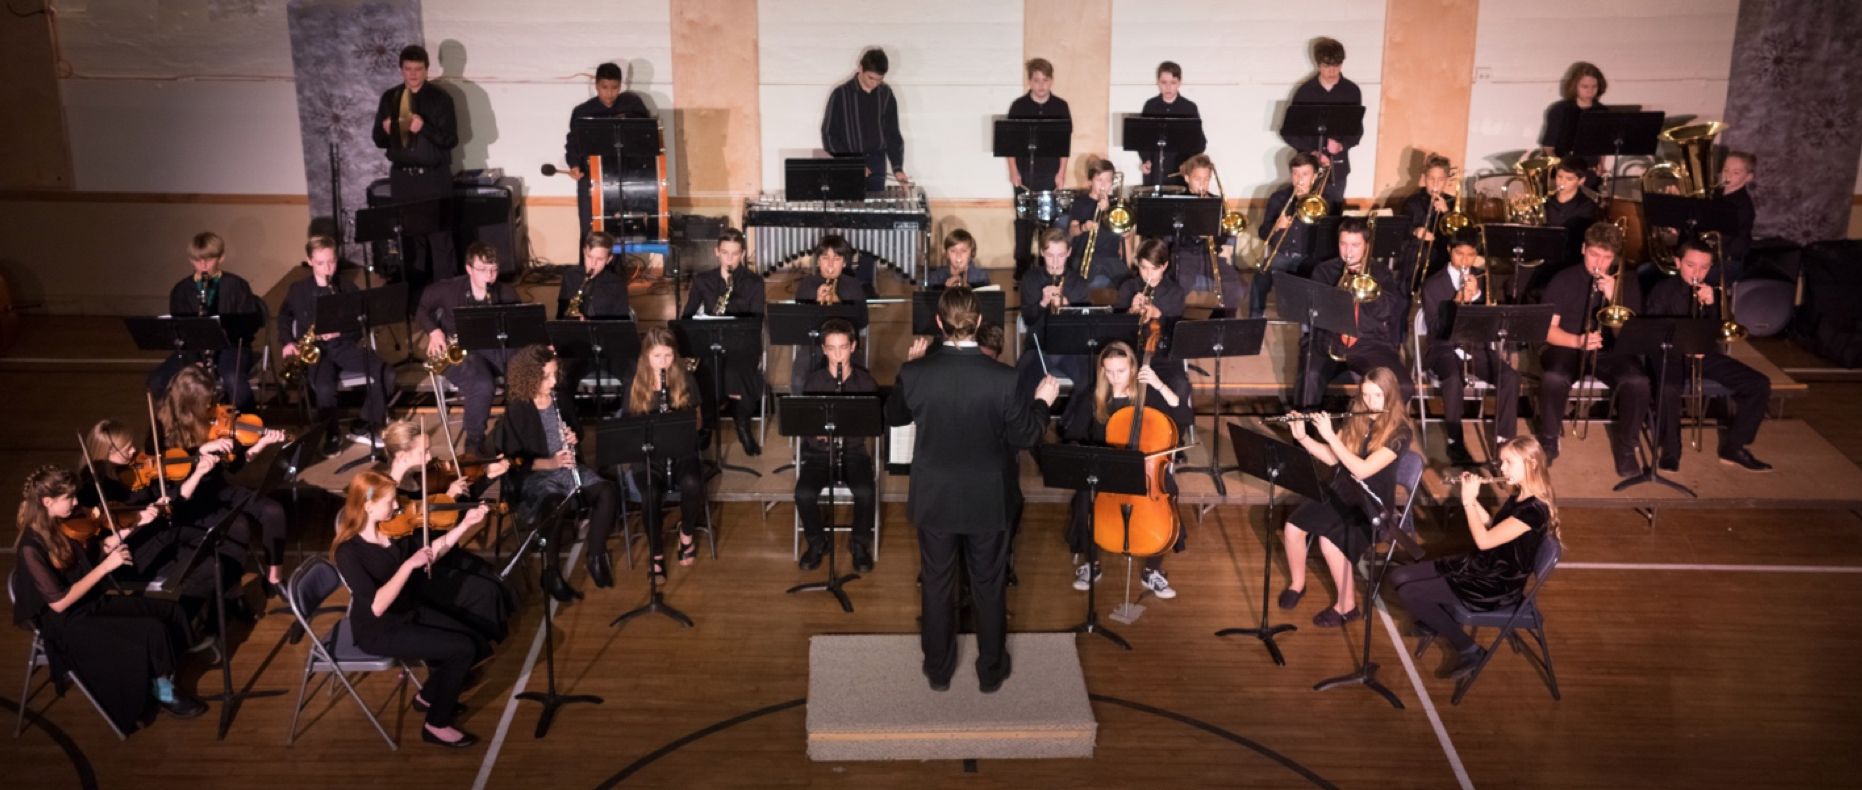 Conductor Matthew Ambrose conducts the 7th-12th graders of Liberty Bell concert band in the piece Dance Macabre.